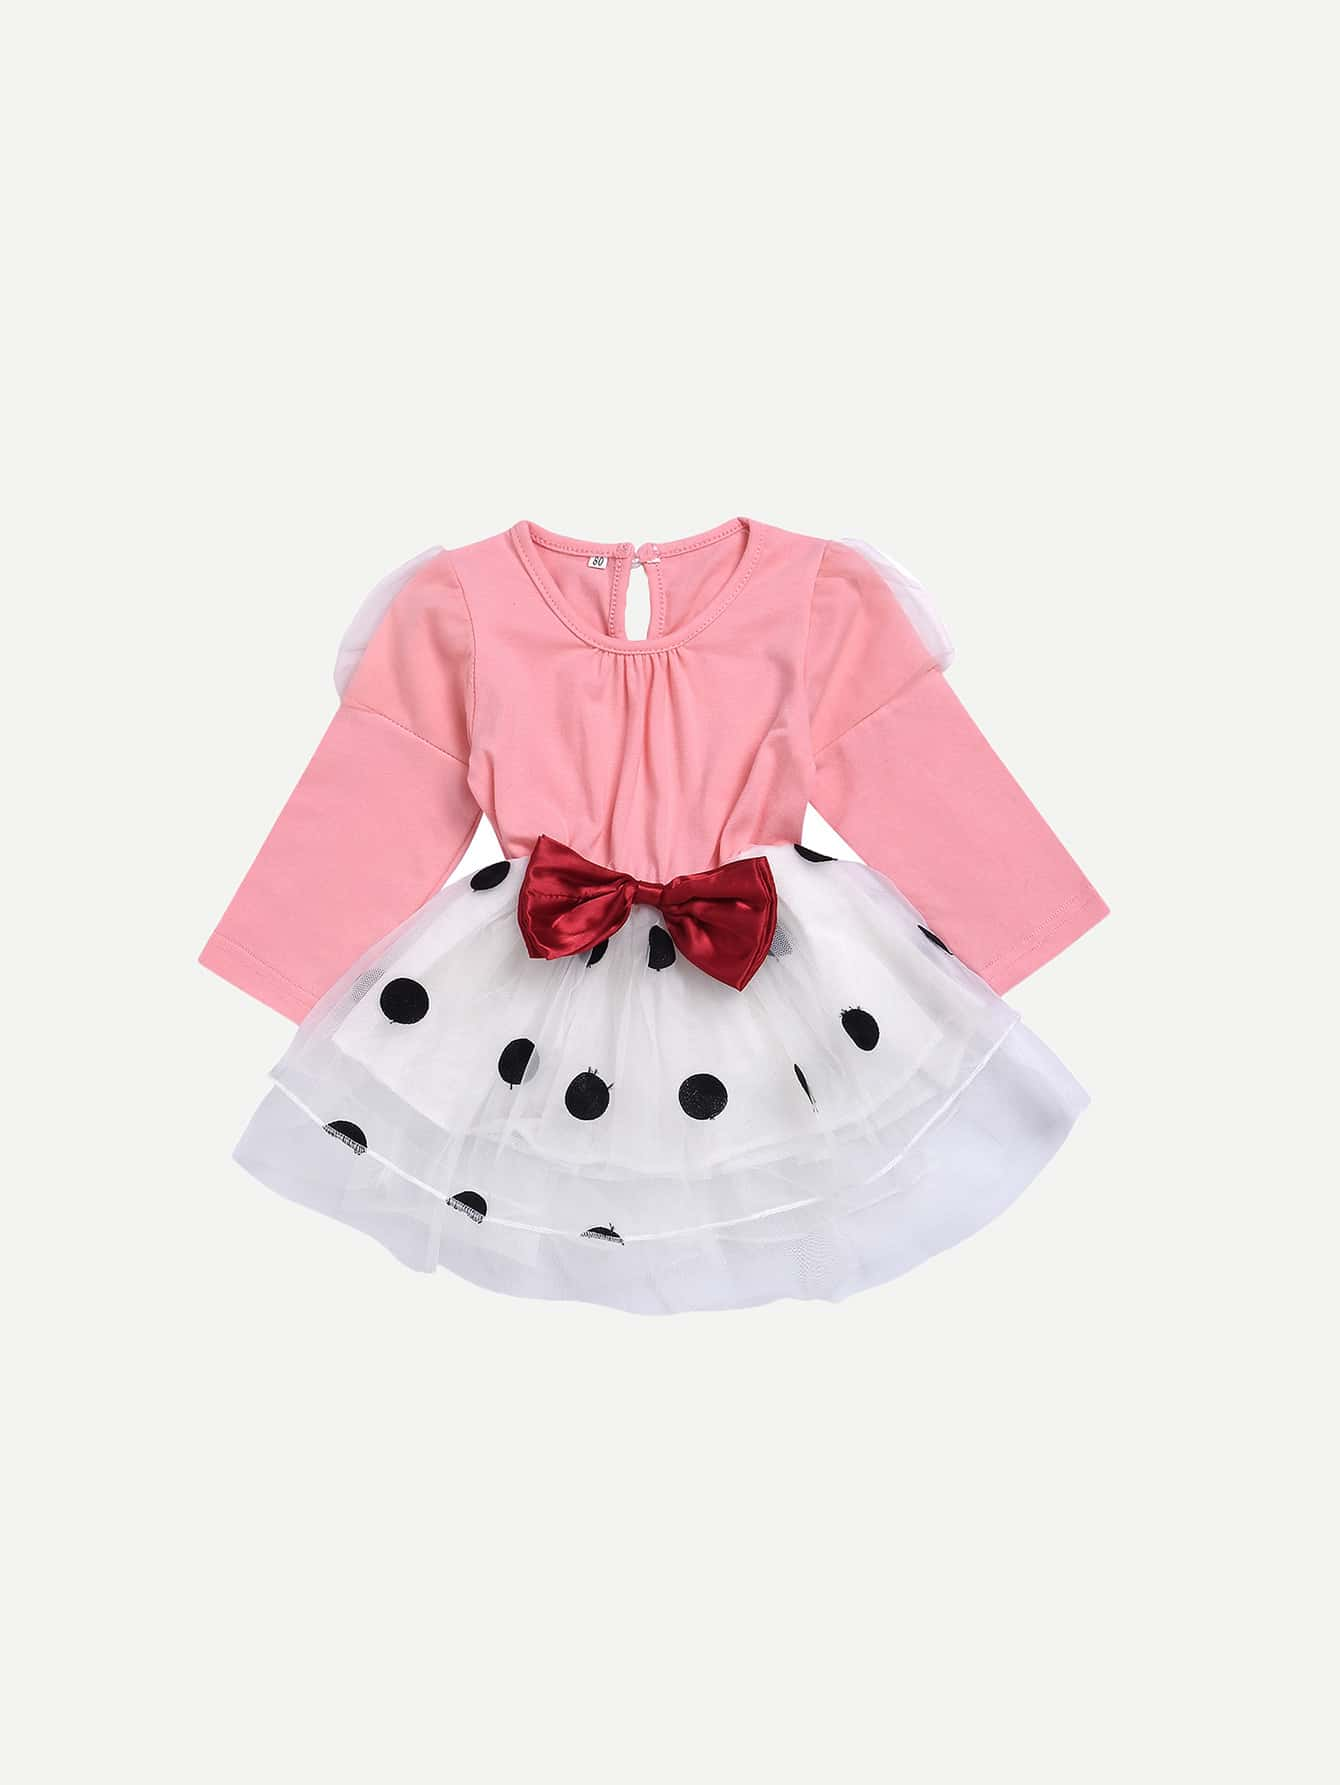 Girls Bow Detail Polka Dot Dress 2017 new brand baby girls summer dress kids white bow dress for girls children navy leisure fashion girls clothes